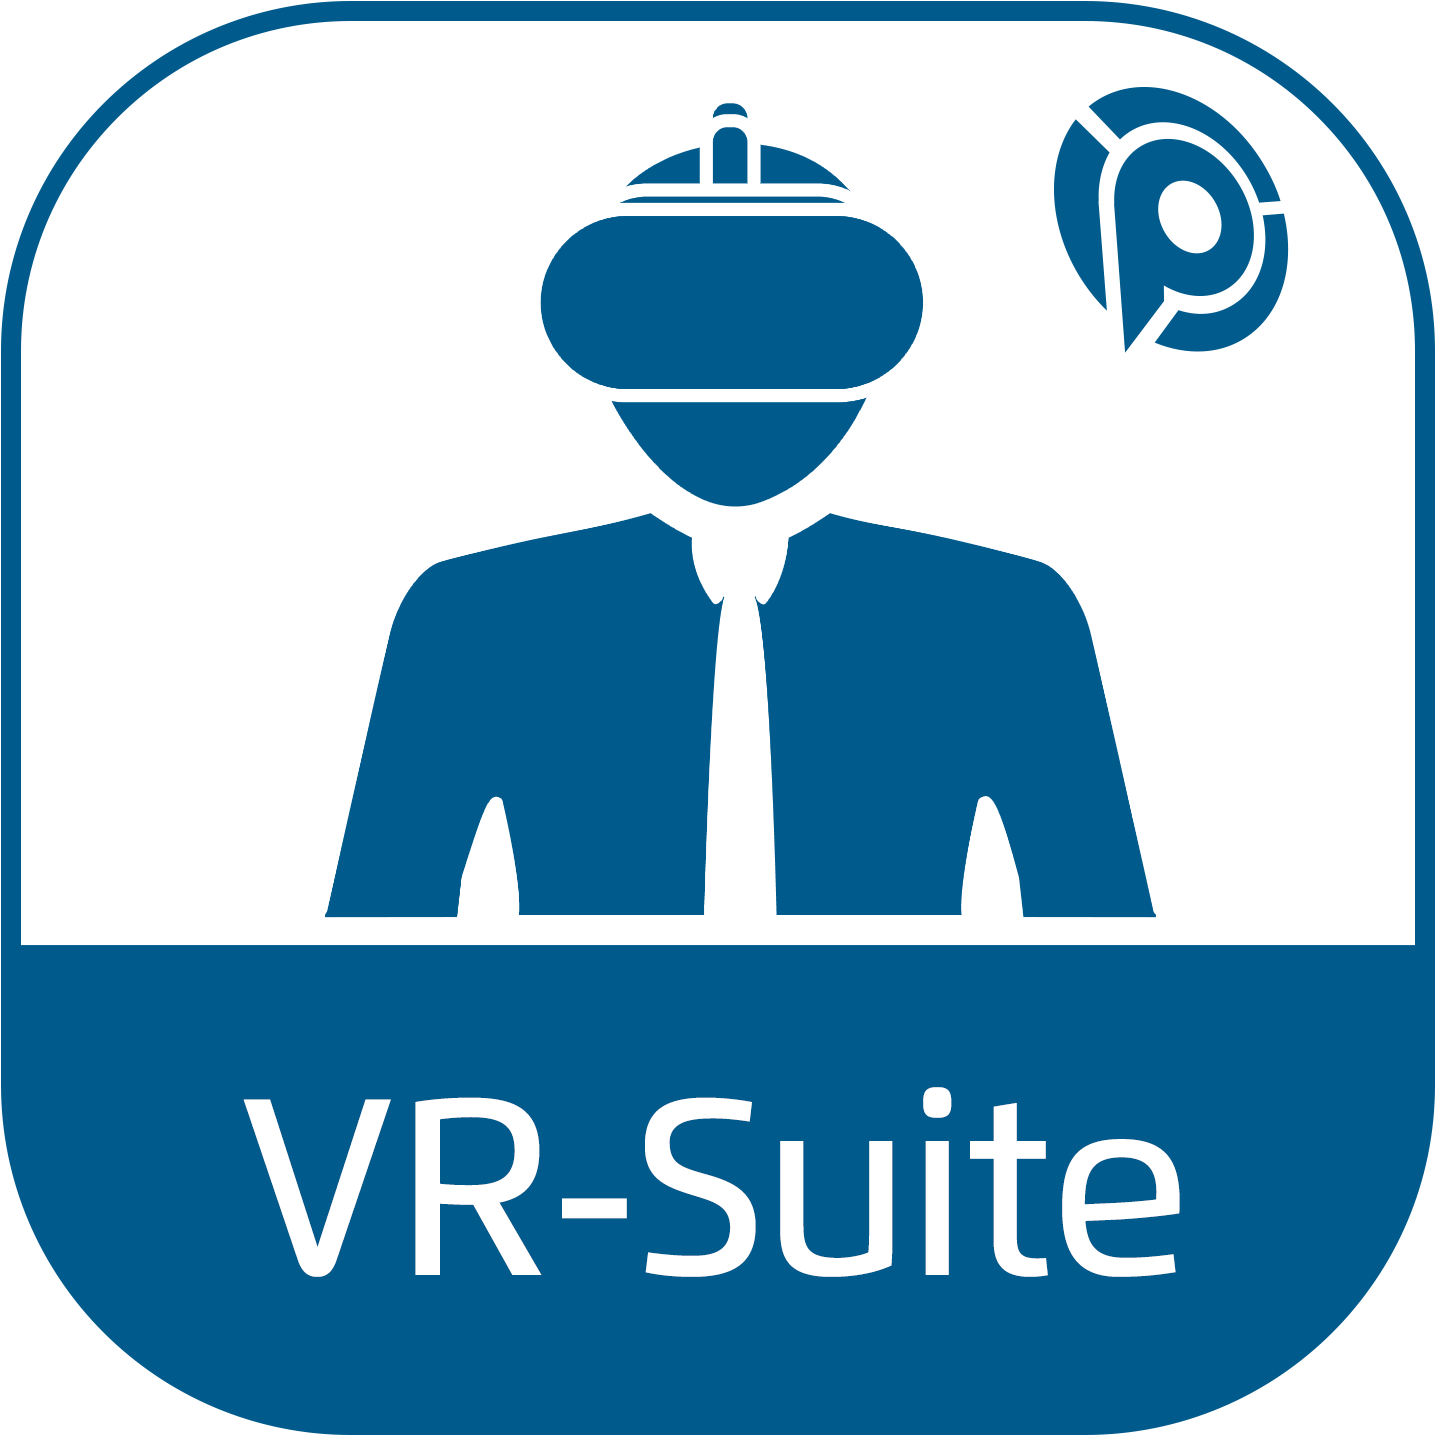 Virtual Reality Suite | Do it yourself VR with the VR-Suite